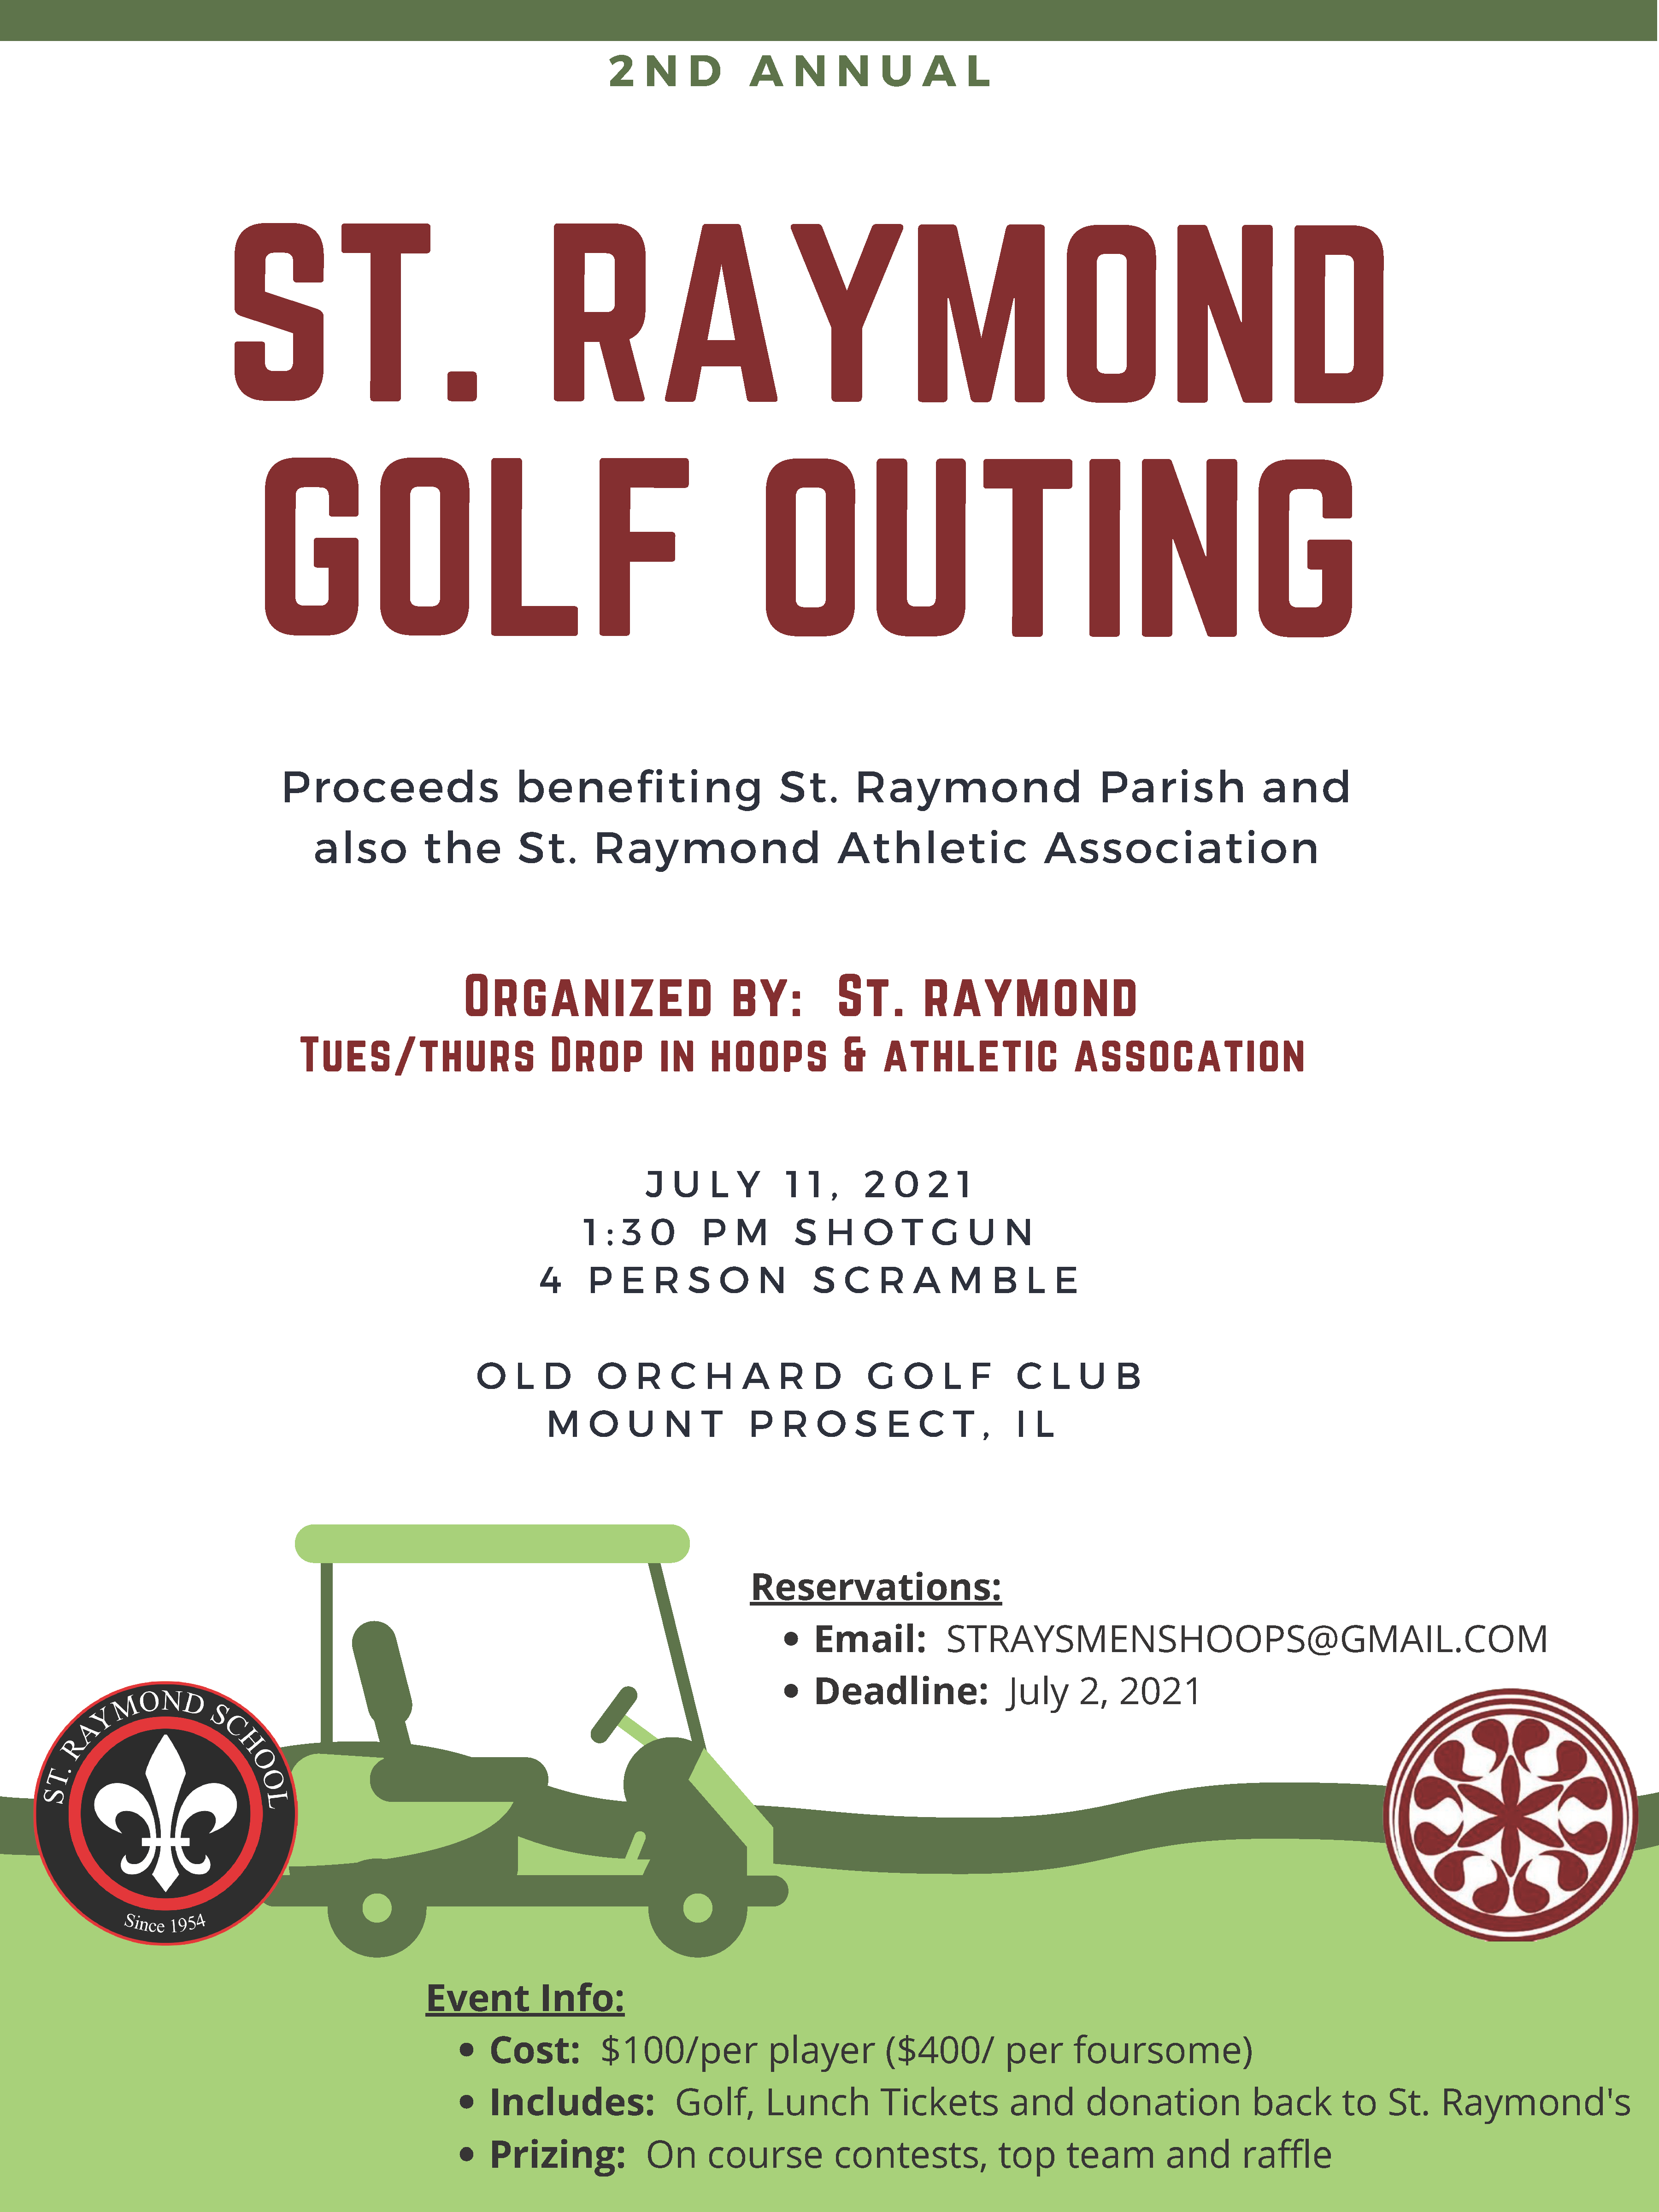 Golf outing flyer 2021